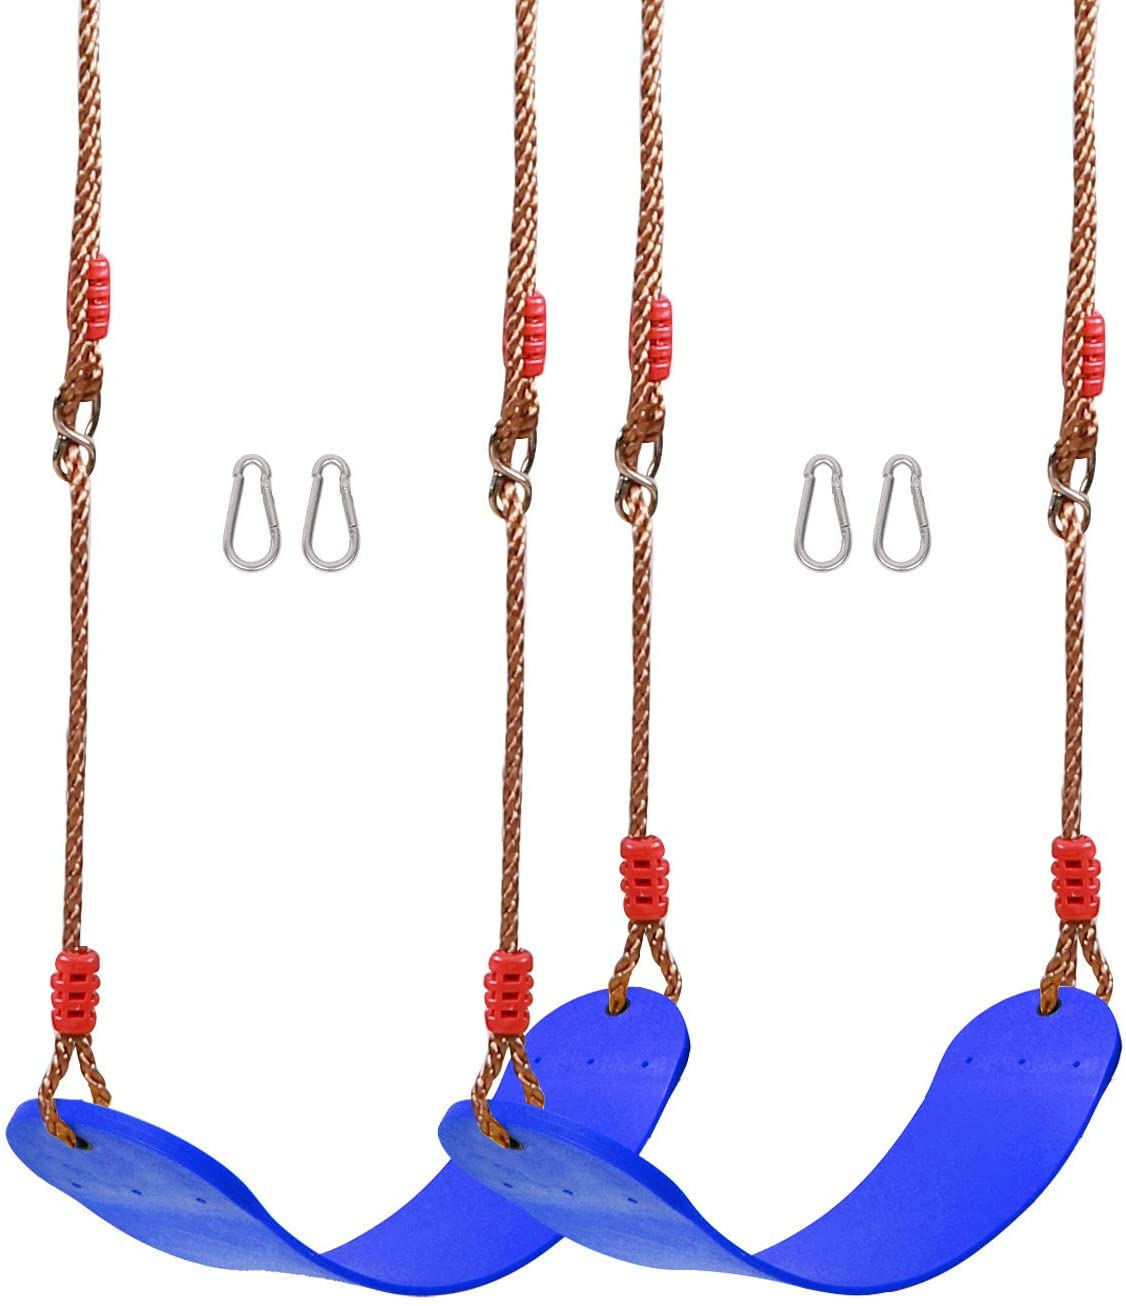 REDCAMP 2-Pack Swing Set Accessories for Kids and Adults, Heavy Duty Outdoor Swing Seat Replacement with Adjustable Long Ropes and Snap Hooks, Blue